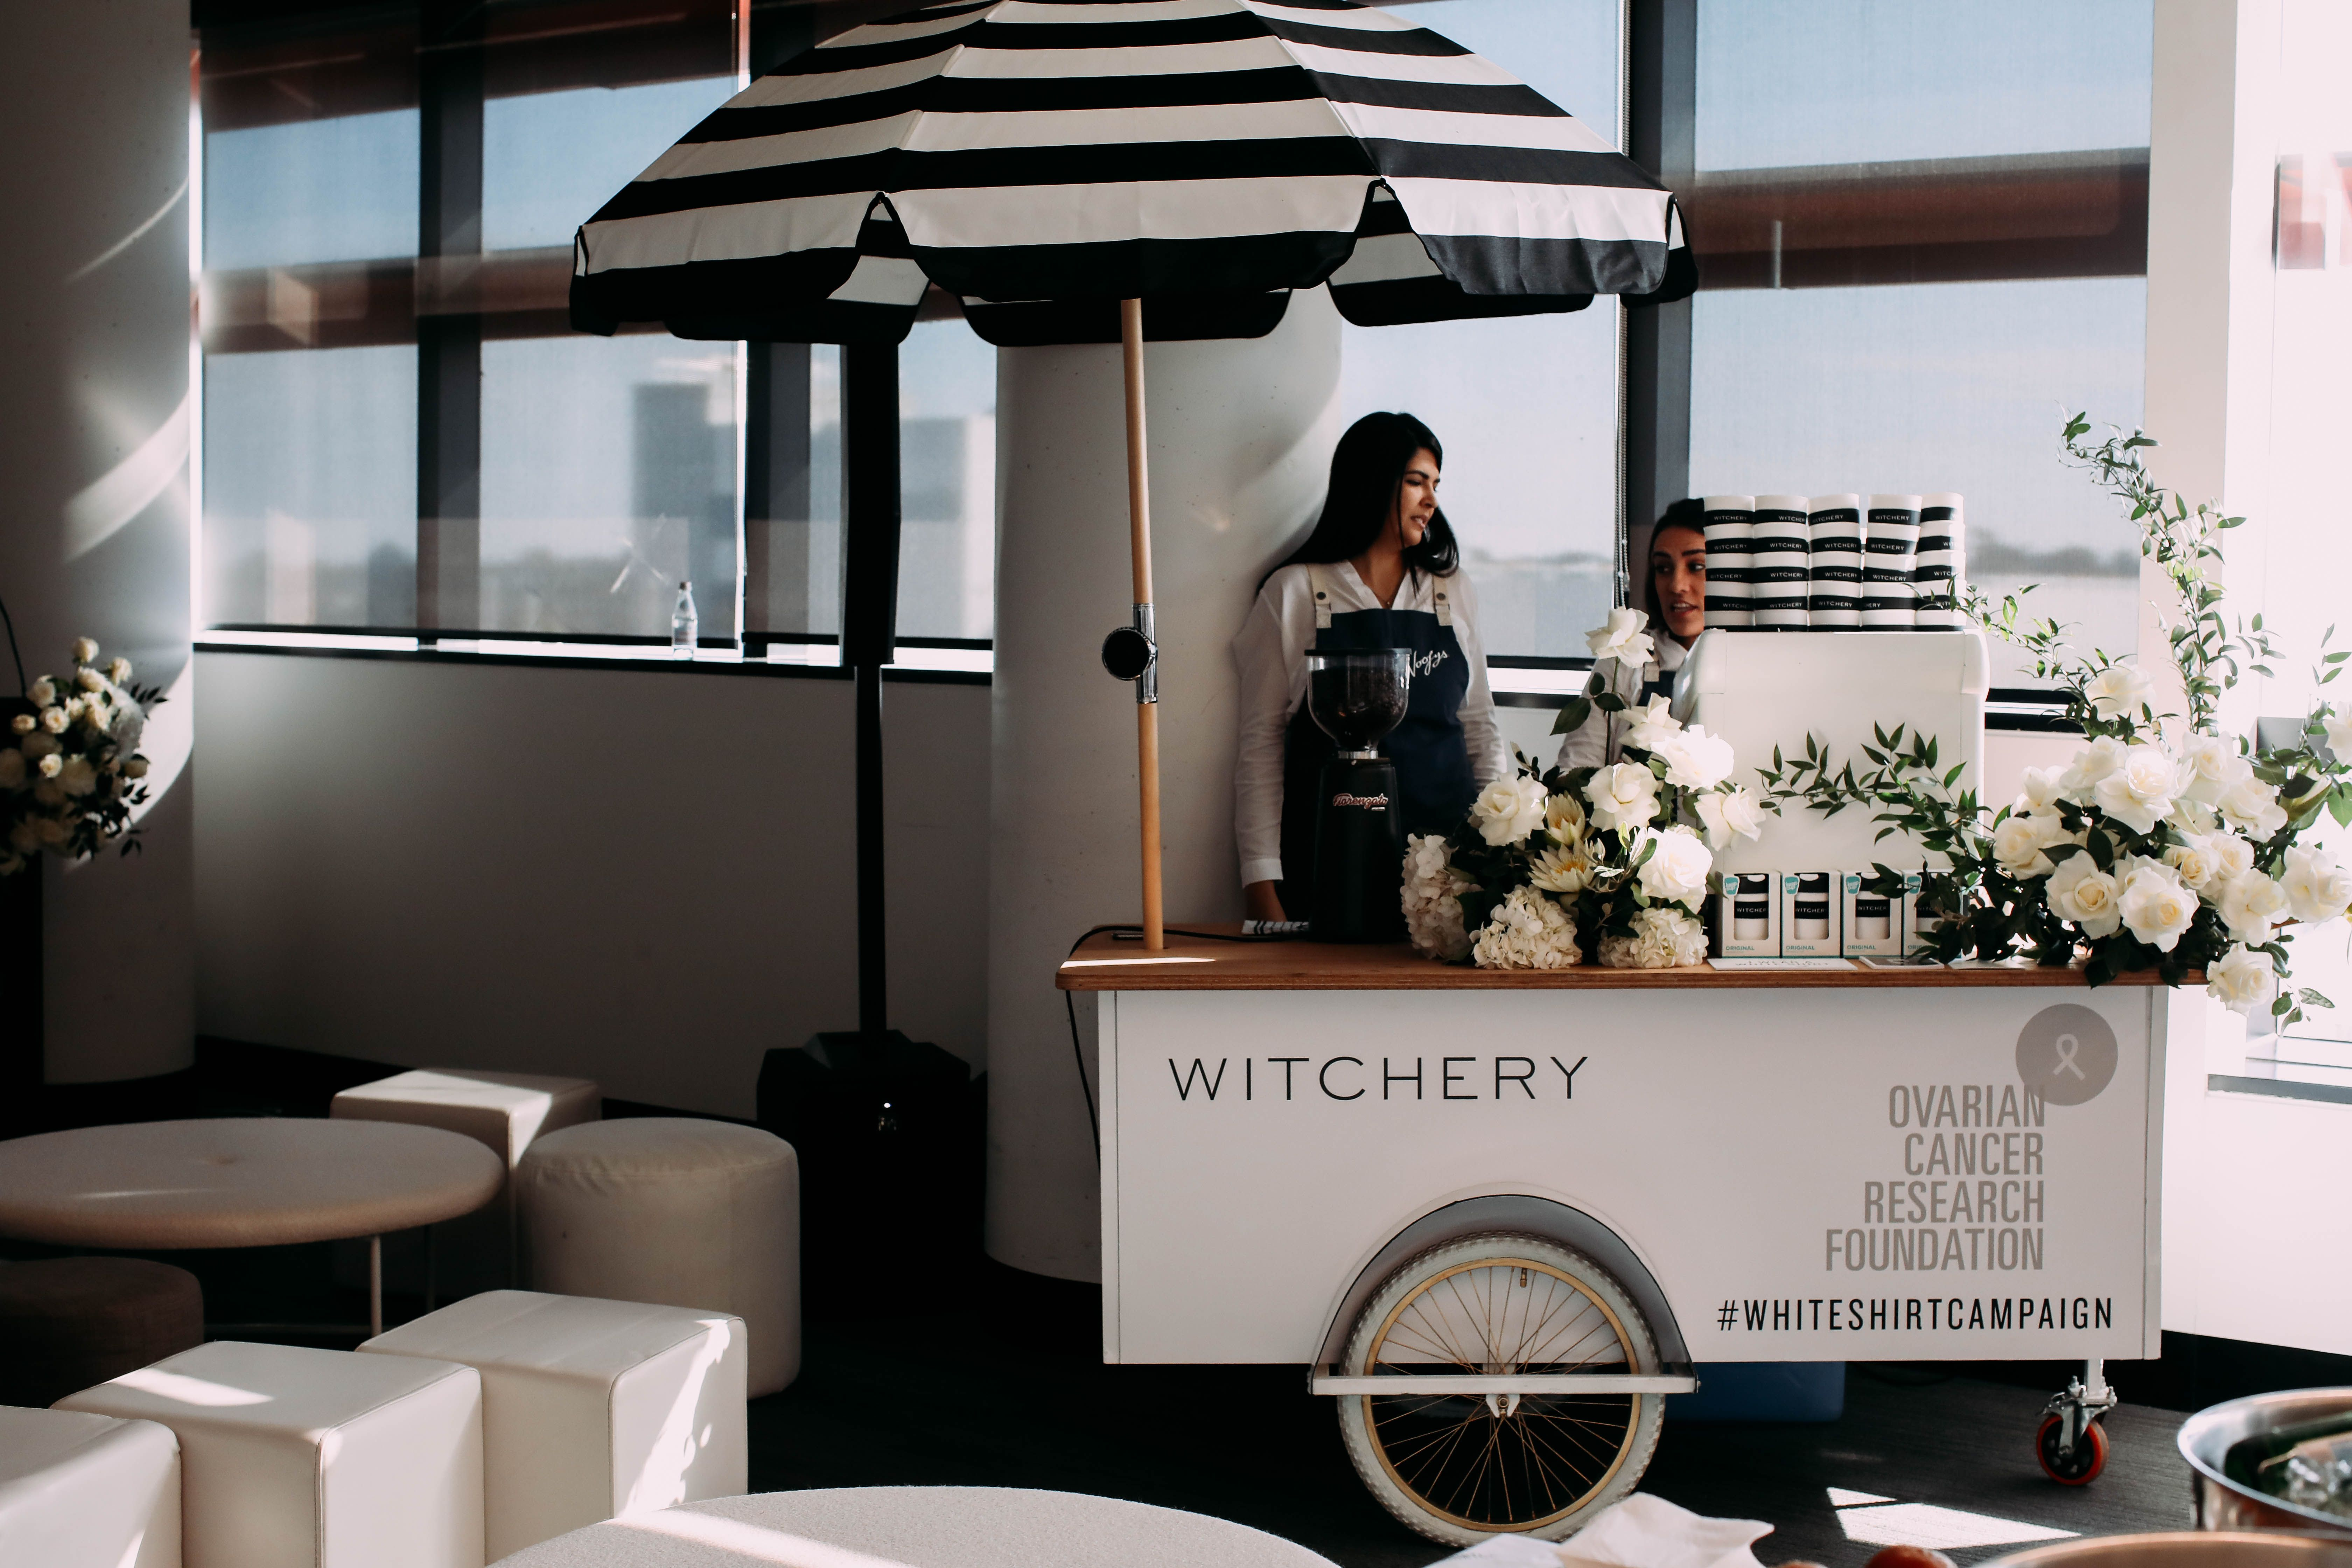 Coffee cart for Witchery's OCRF pop up event. #coffeecart #brandactivation #brand #event #eventcatering